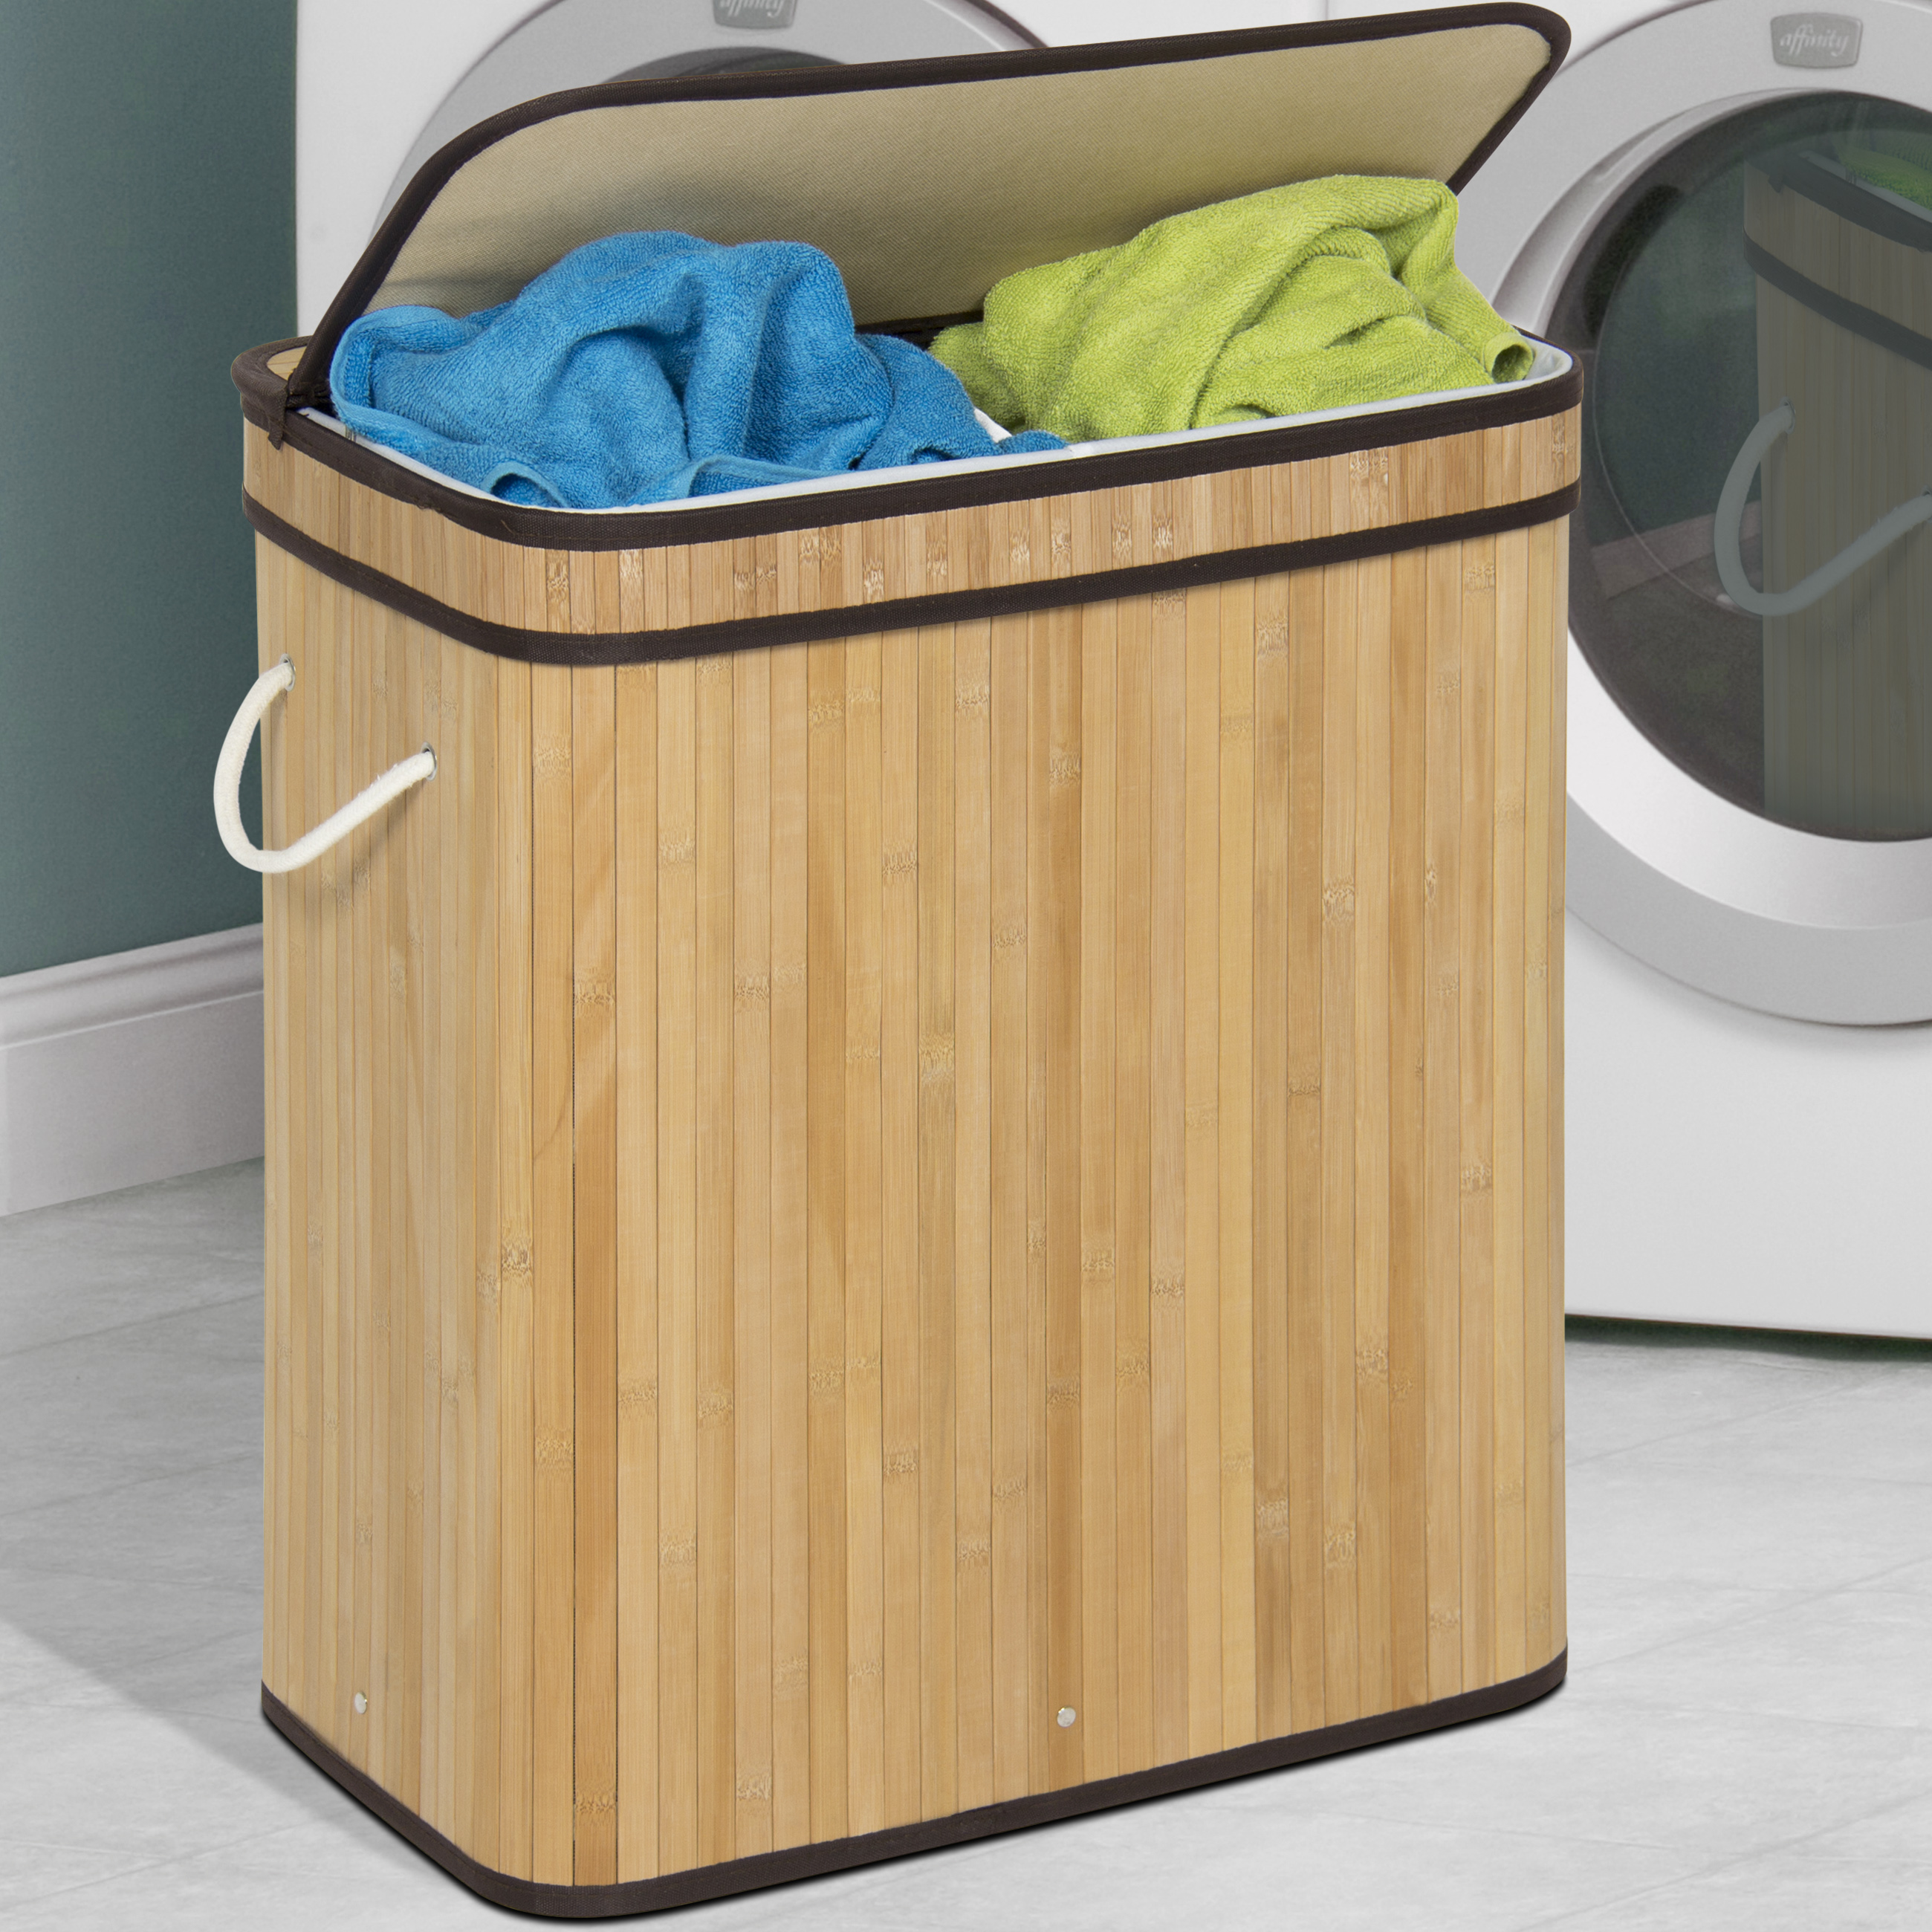 Best Choice Products Bamboo Double Hamper Laundry Basket - Natural